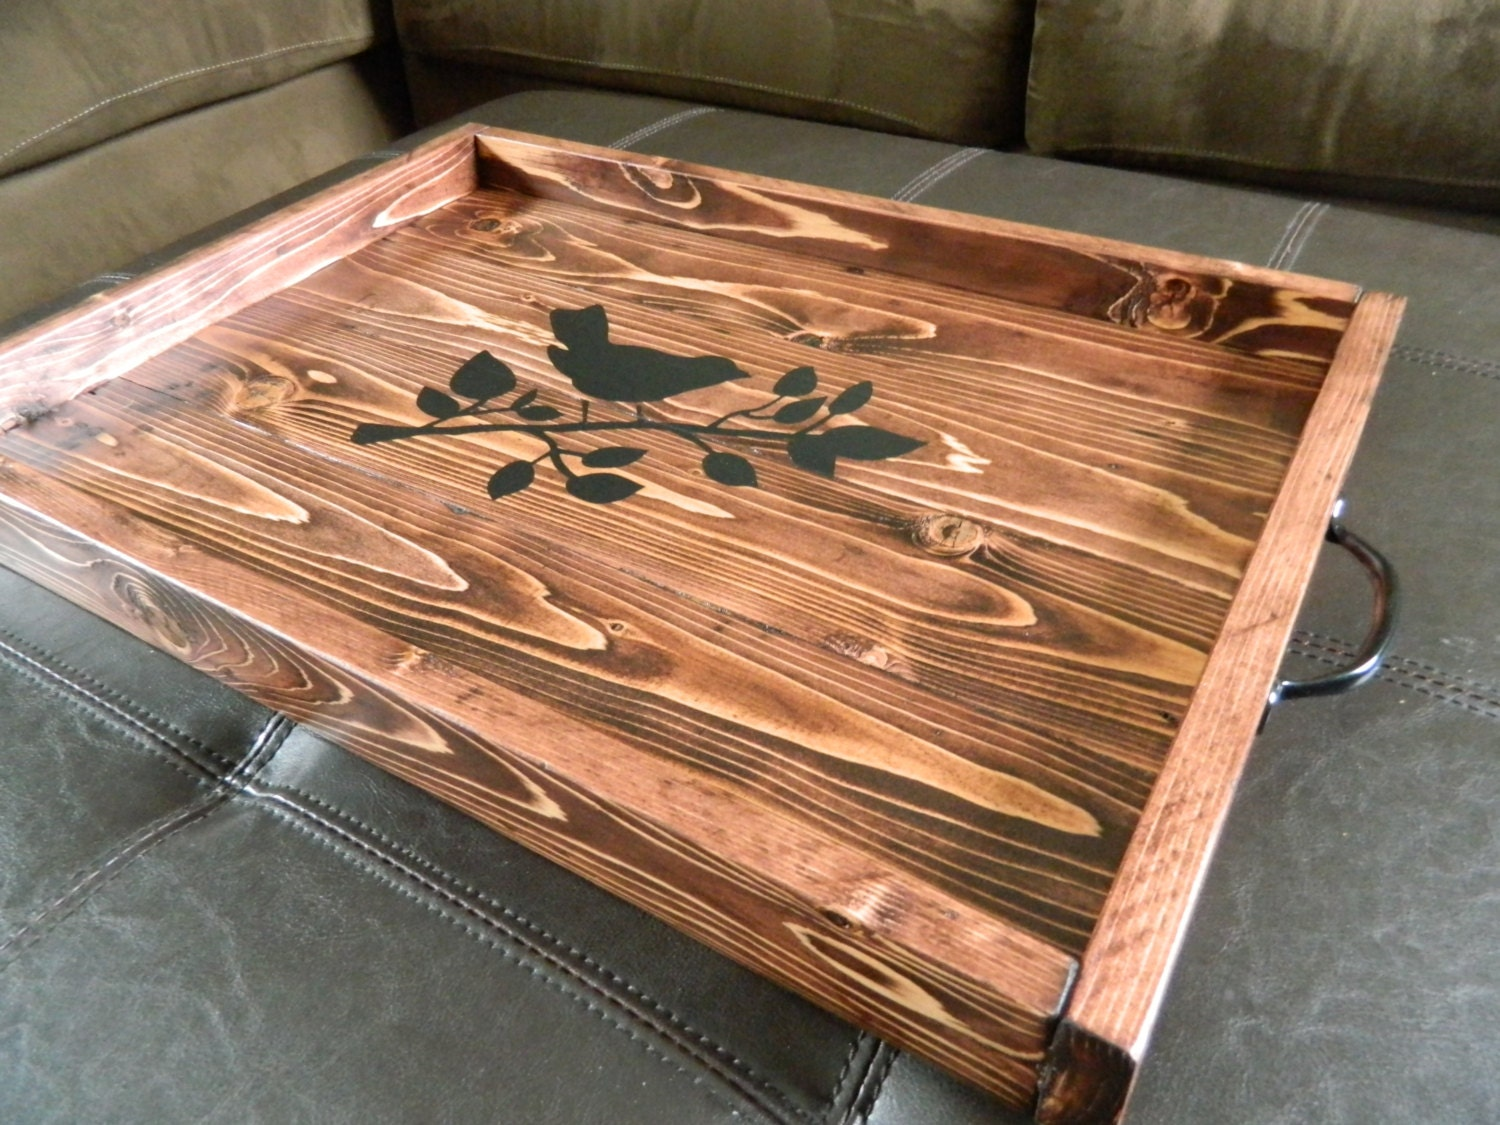 Reclaimed Wood Ottoman ~ Ottoman tray reclaimed wood bird stencil design black metal